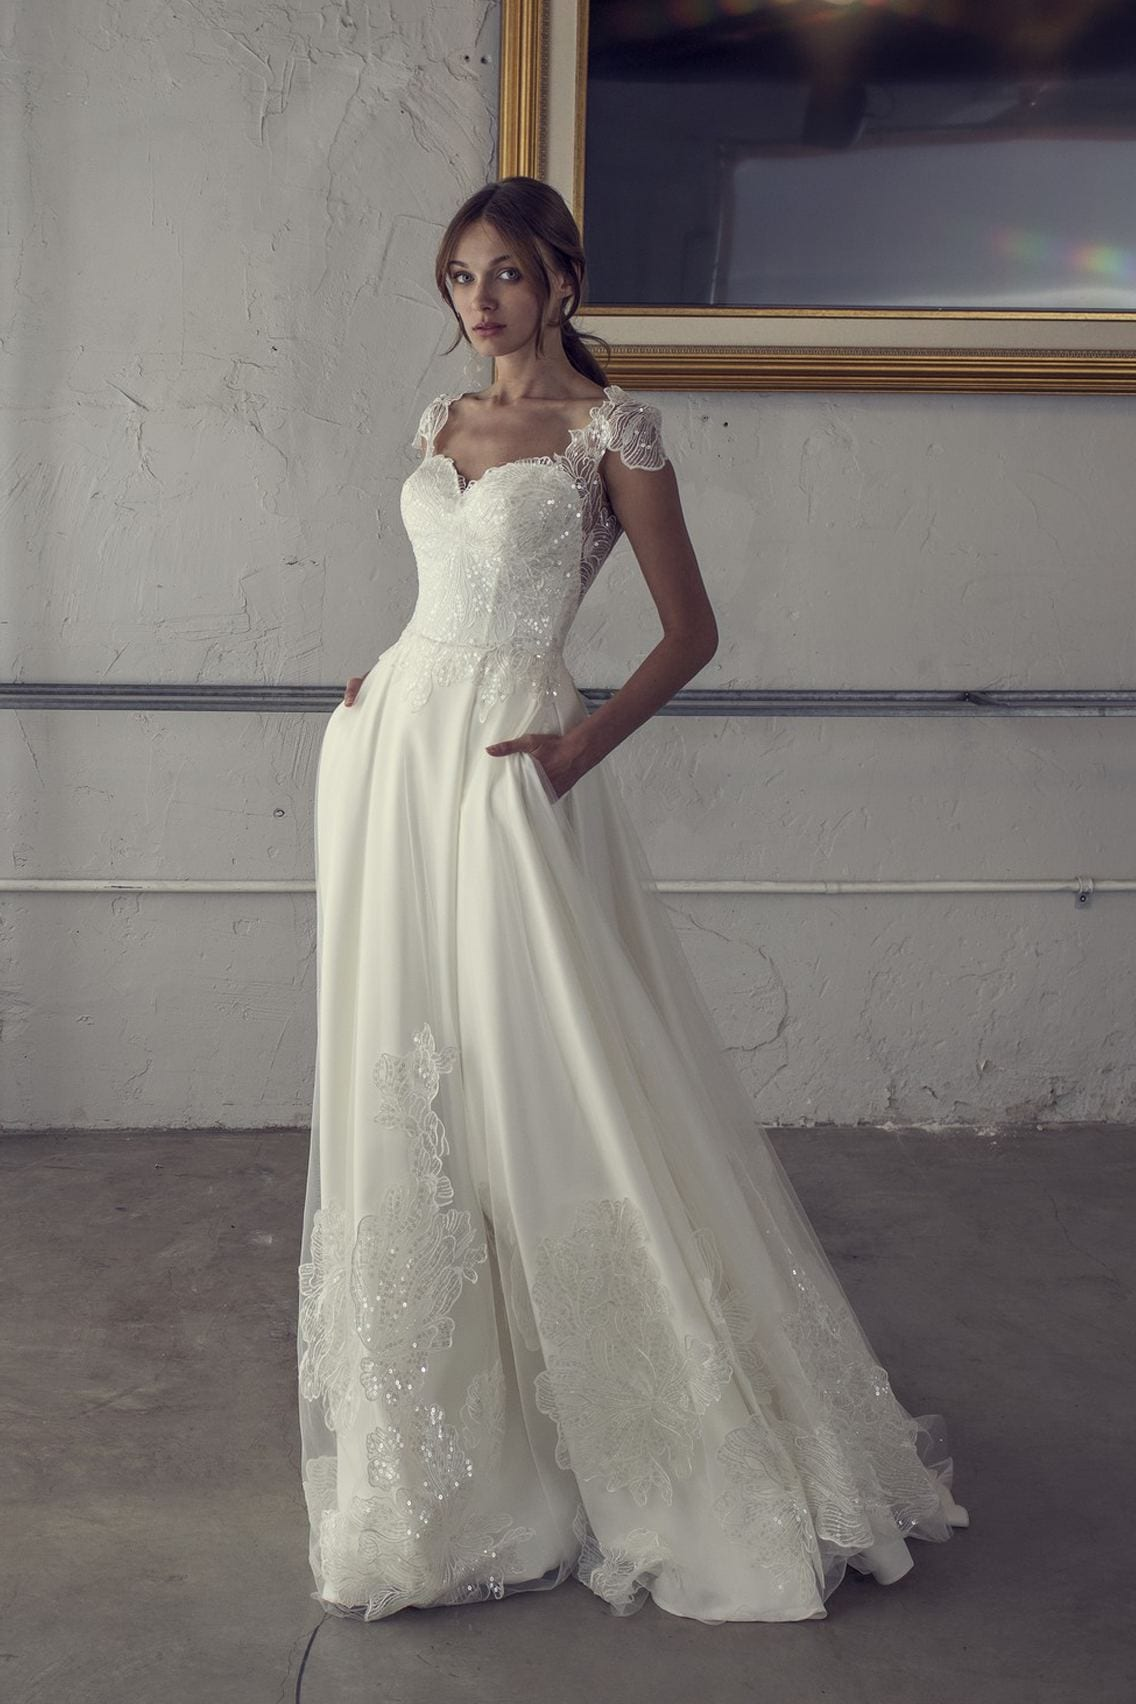 Simple-Bridal-Outfit-Ideas-For-Women